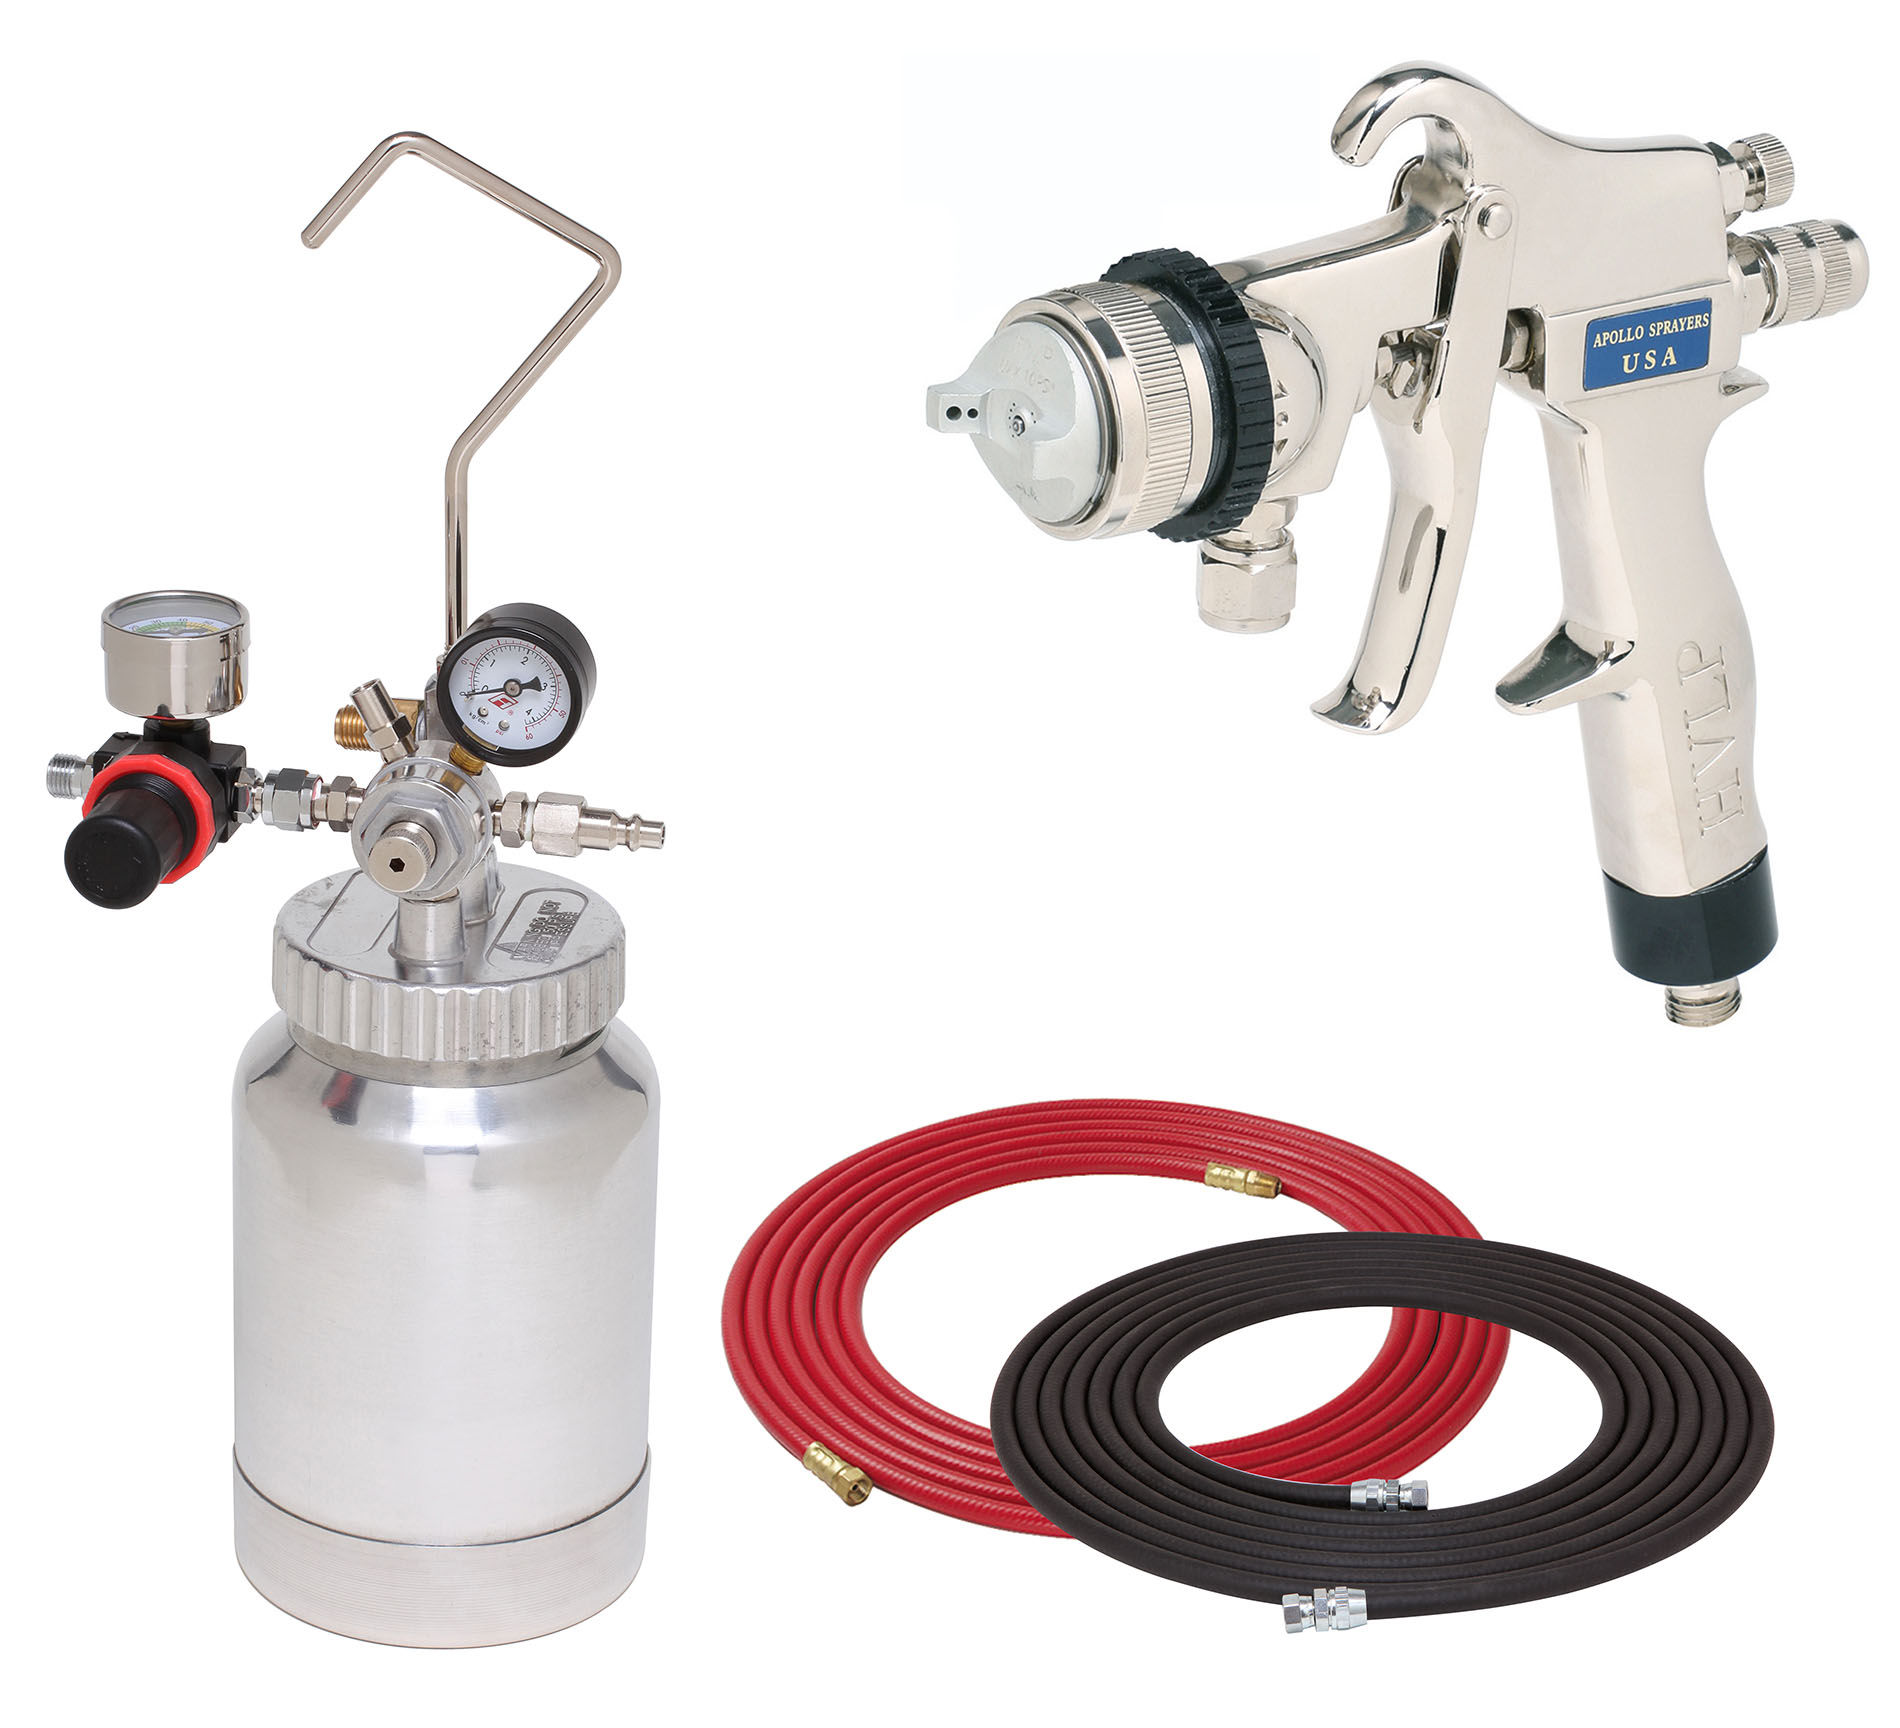 2 Quart Combo Package with the 8200 Sprayer Gun